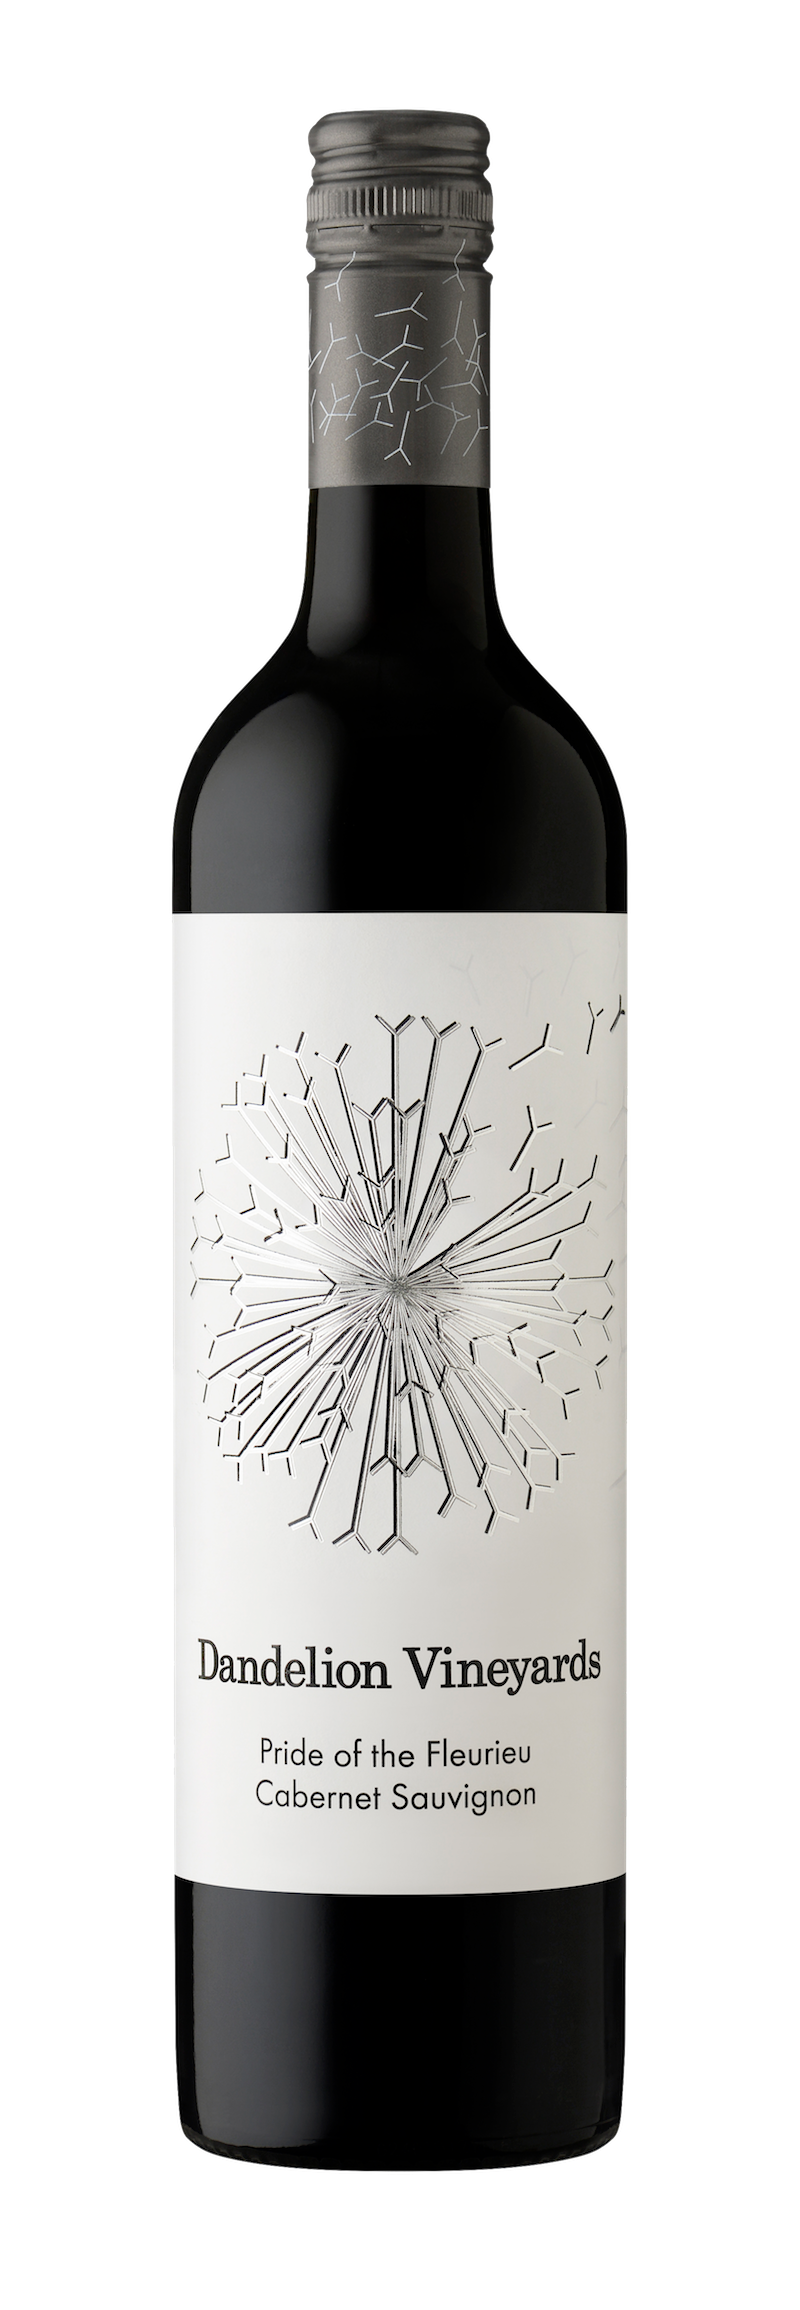 2018 Dandelion Vineyards Pride of the Fleurieu Cabernet